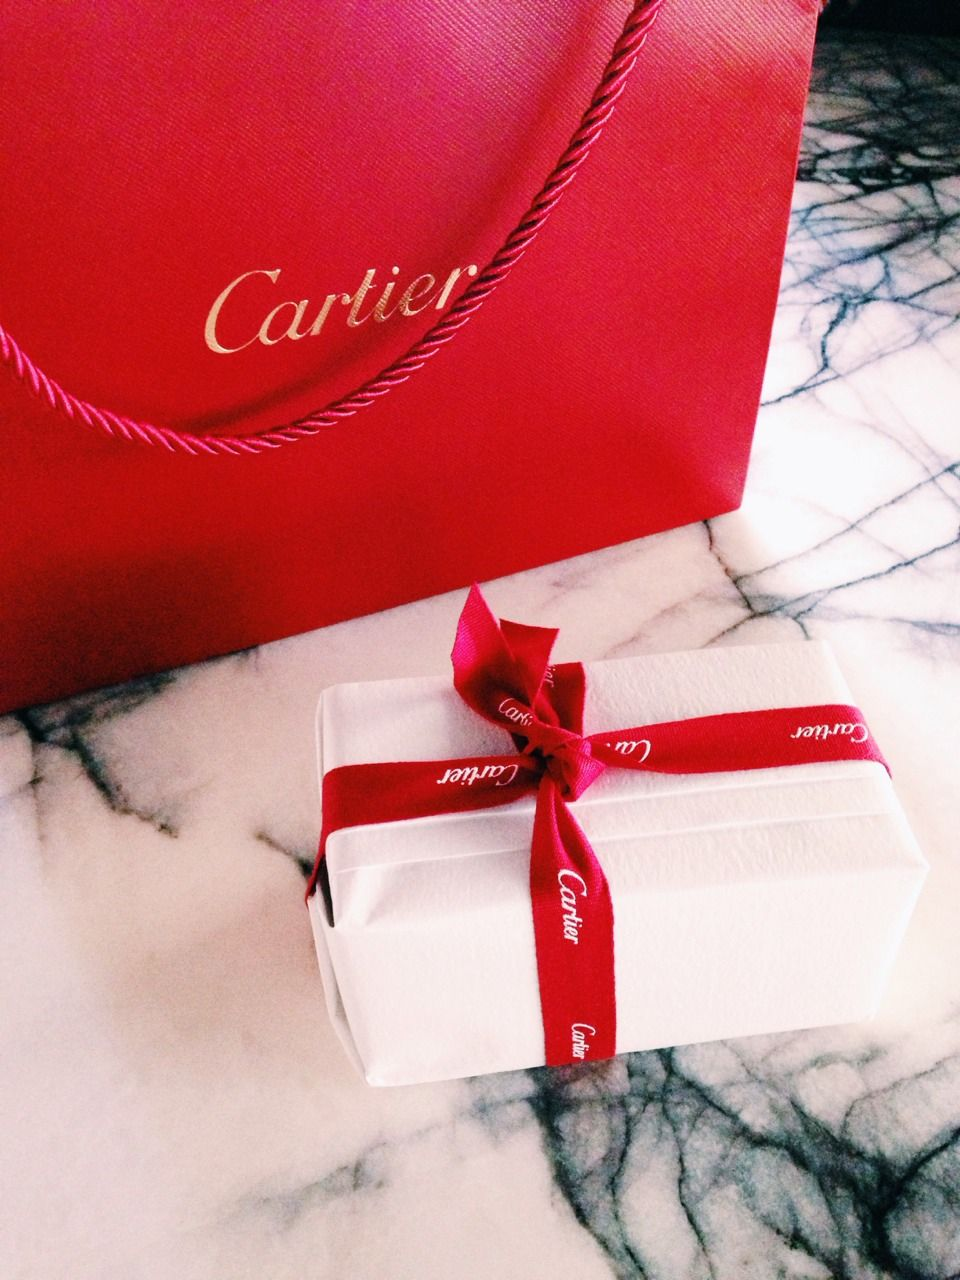 Cartier. The most amazing customer service and shopping